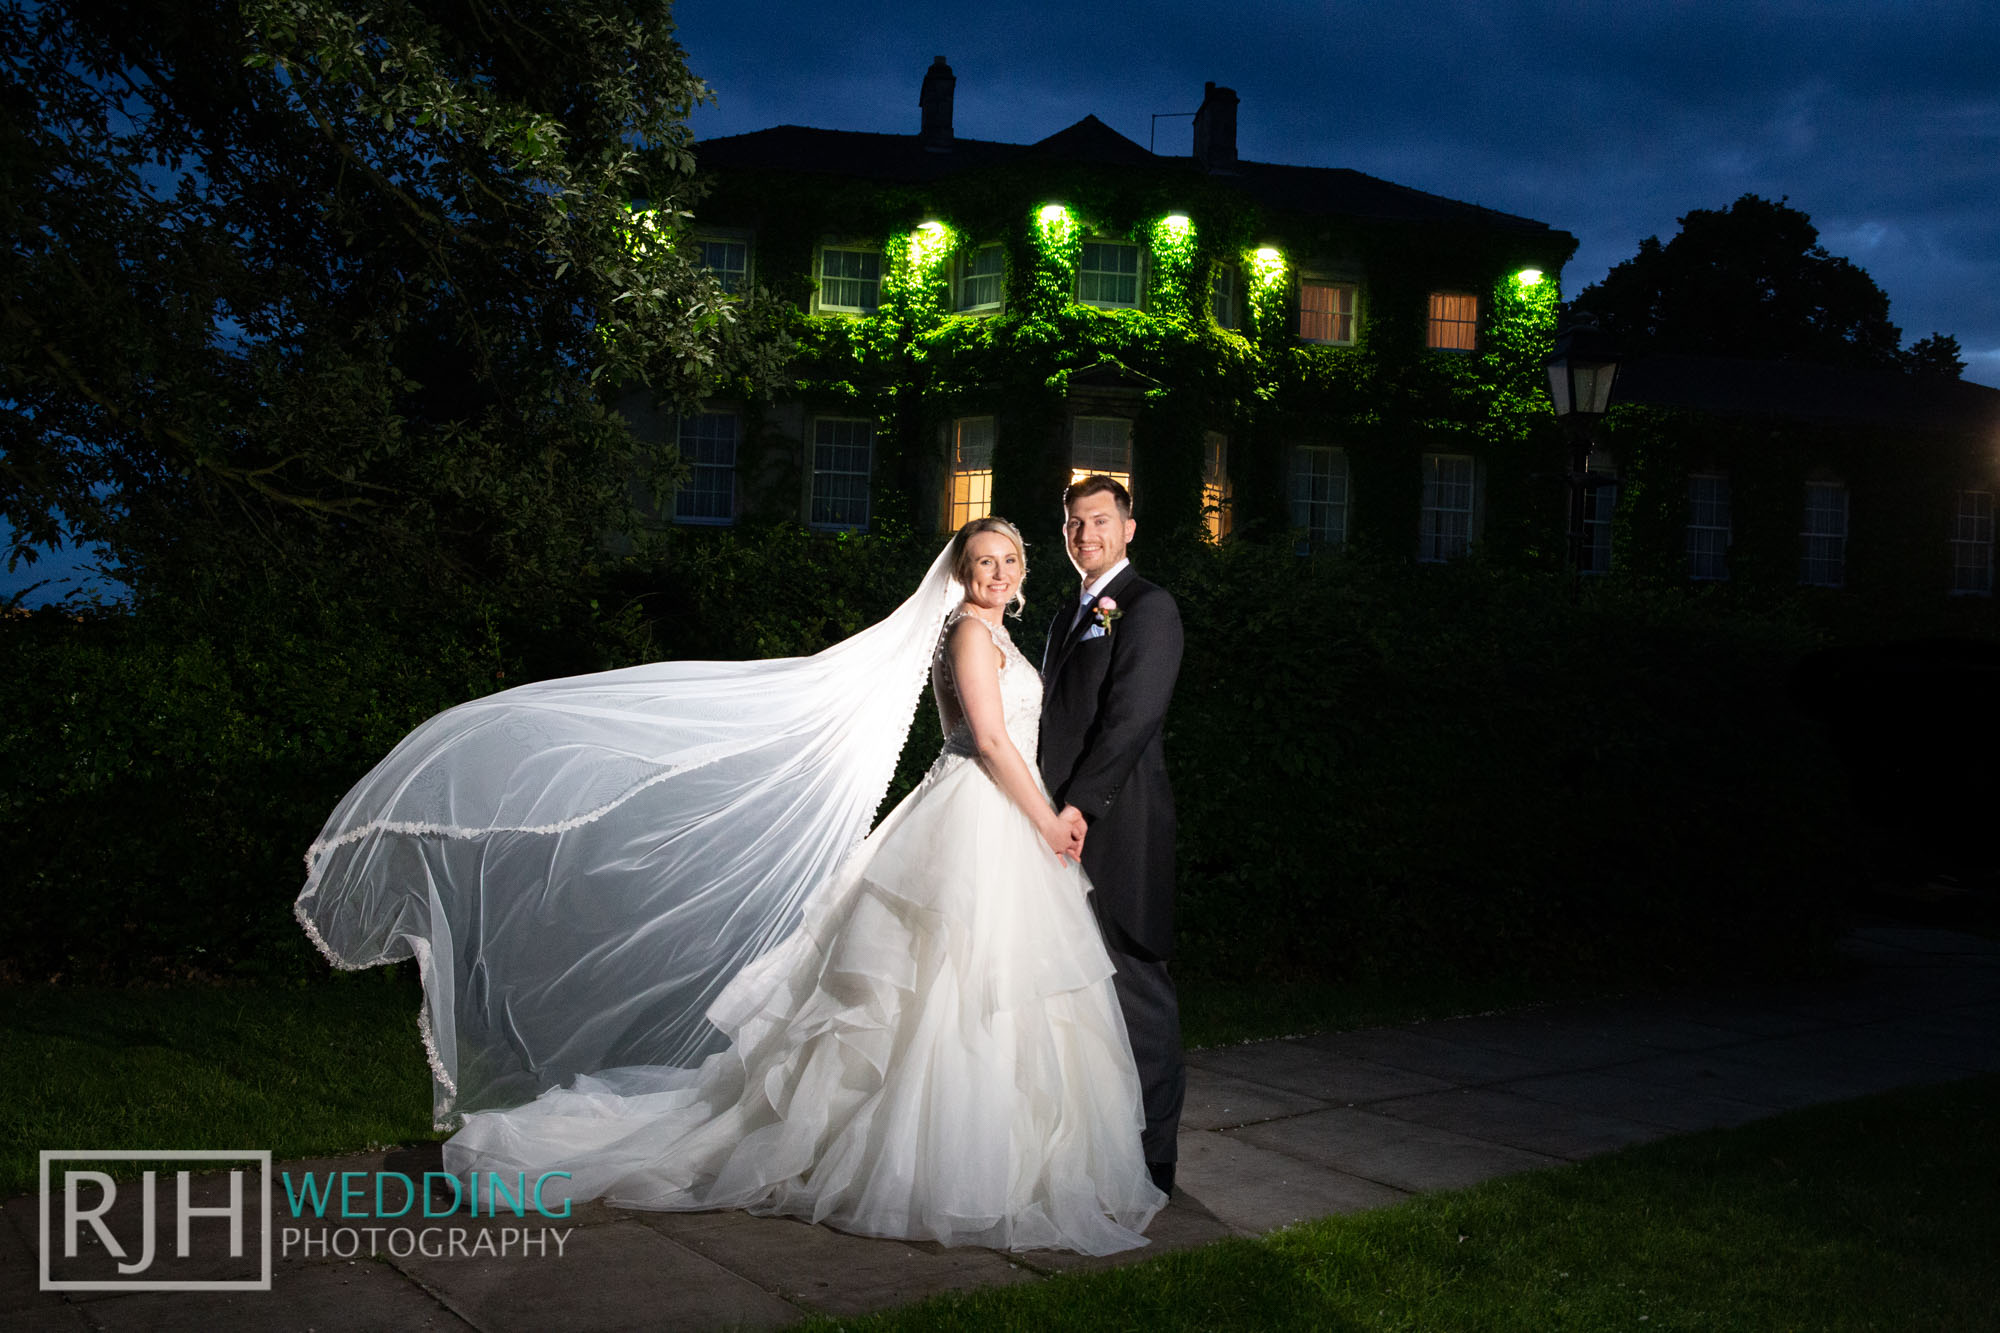 Aston Hall Hotel Wedding Photography_Dowell Wedding_080_IMG_6253.jpg